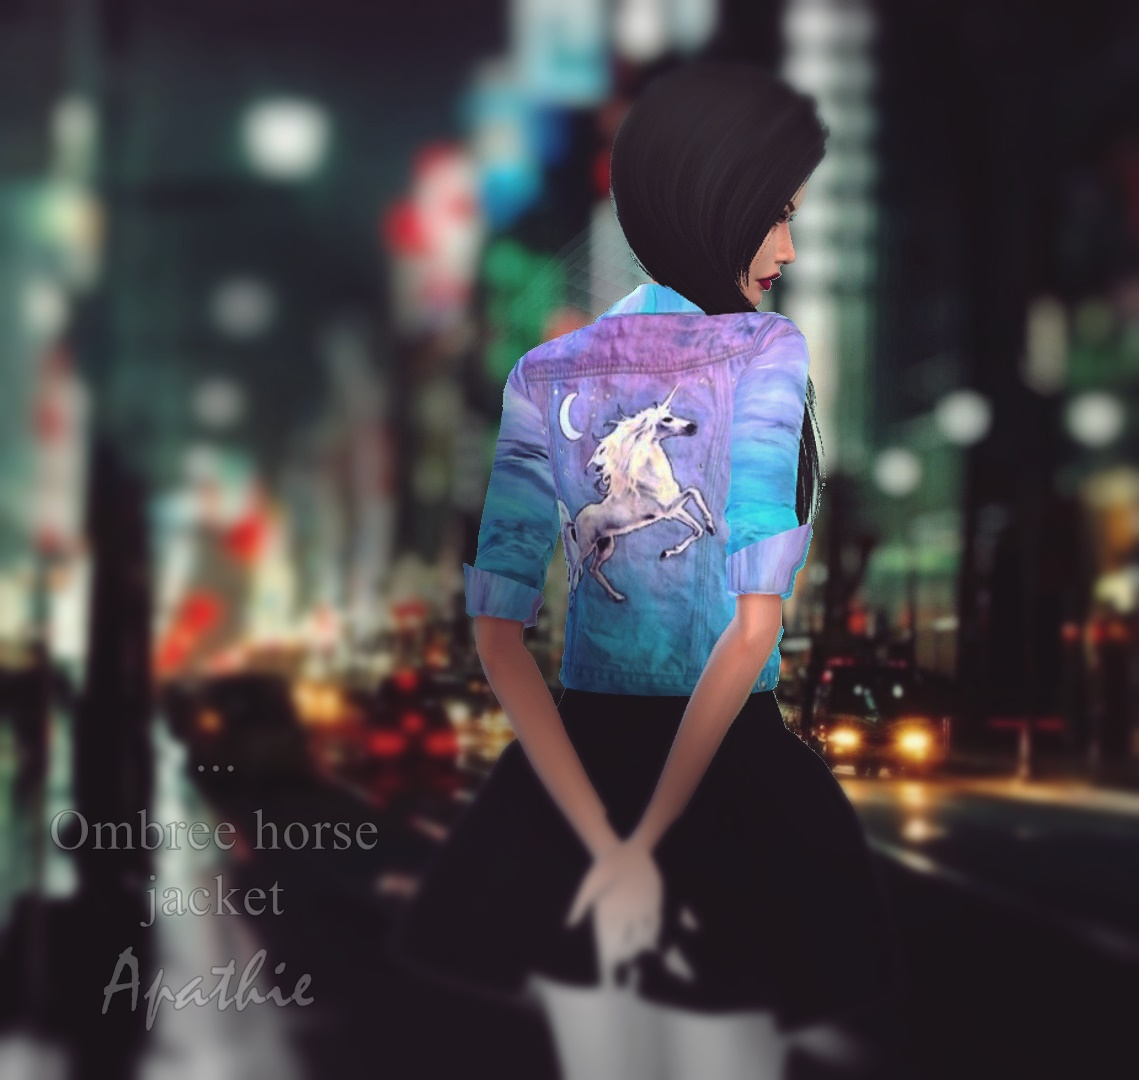 Ombre Horse Jacket by Apathieee